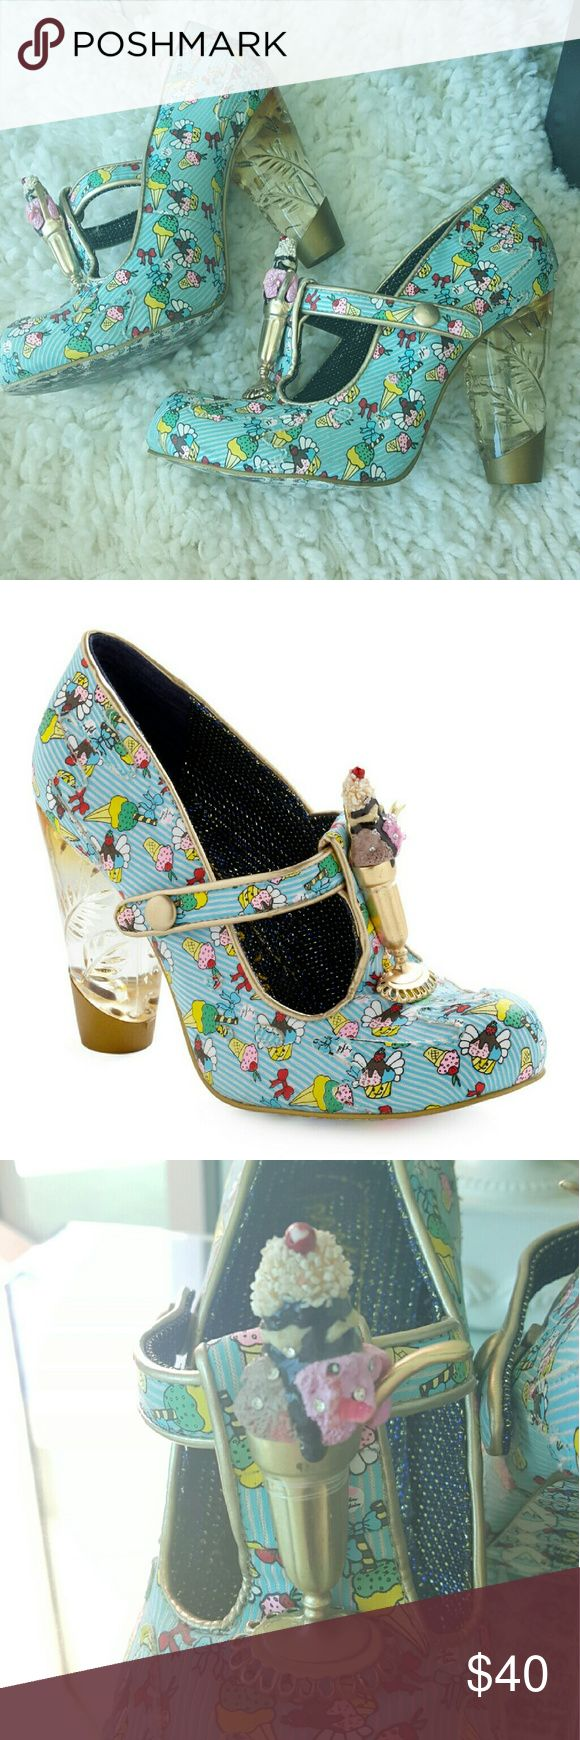 Irregular Choice Sundae Best Heel Adorable and quirky, Ice Cream pumps from Sundae Best Heel. Featuring ice cream print details, a quick button closure, ice cream figure at T-strao and clear amber hued heels.  Lightly used, some color wear to the bottom of sole as pictured. No damage for wear to the exterior of the rest of the shoes Irregular Choice Shoes Heels